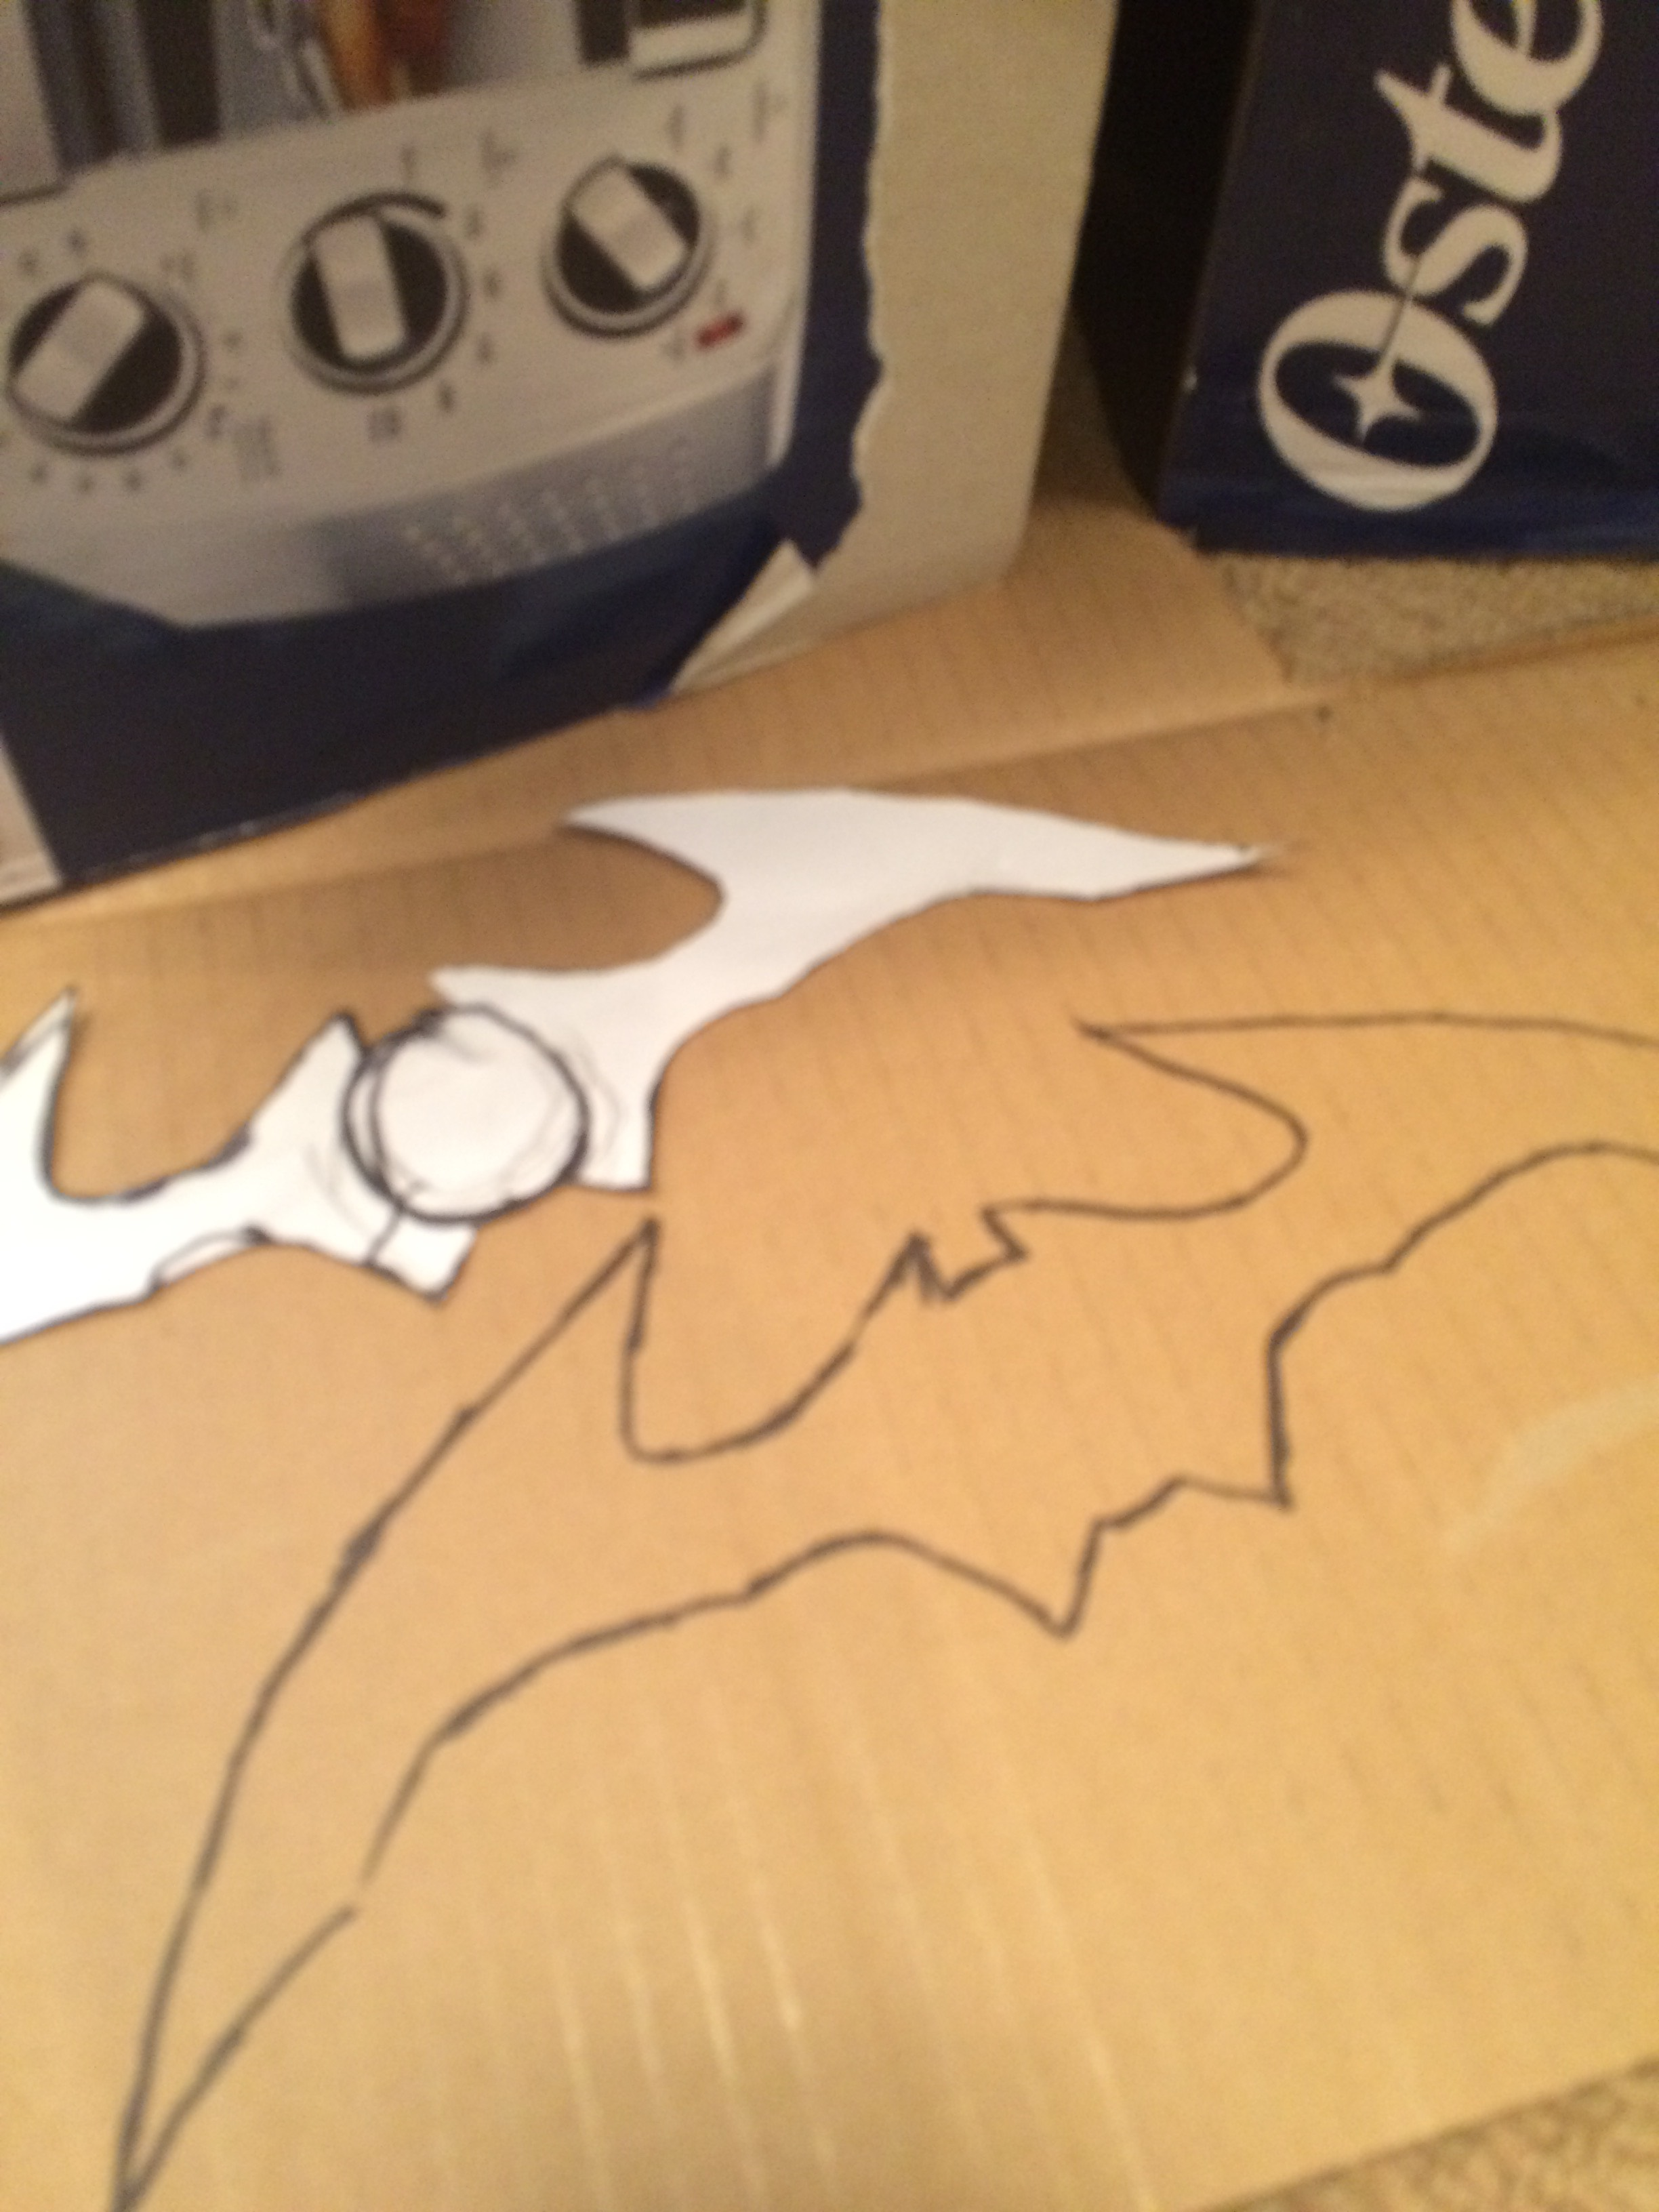 Picture of Transferring to Cardboard